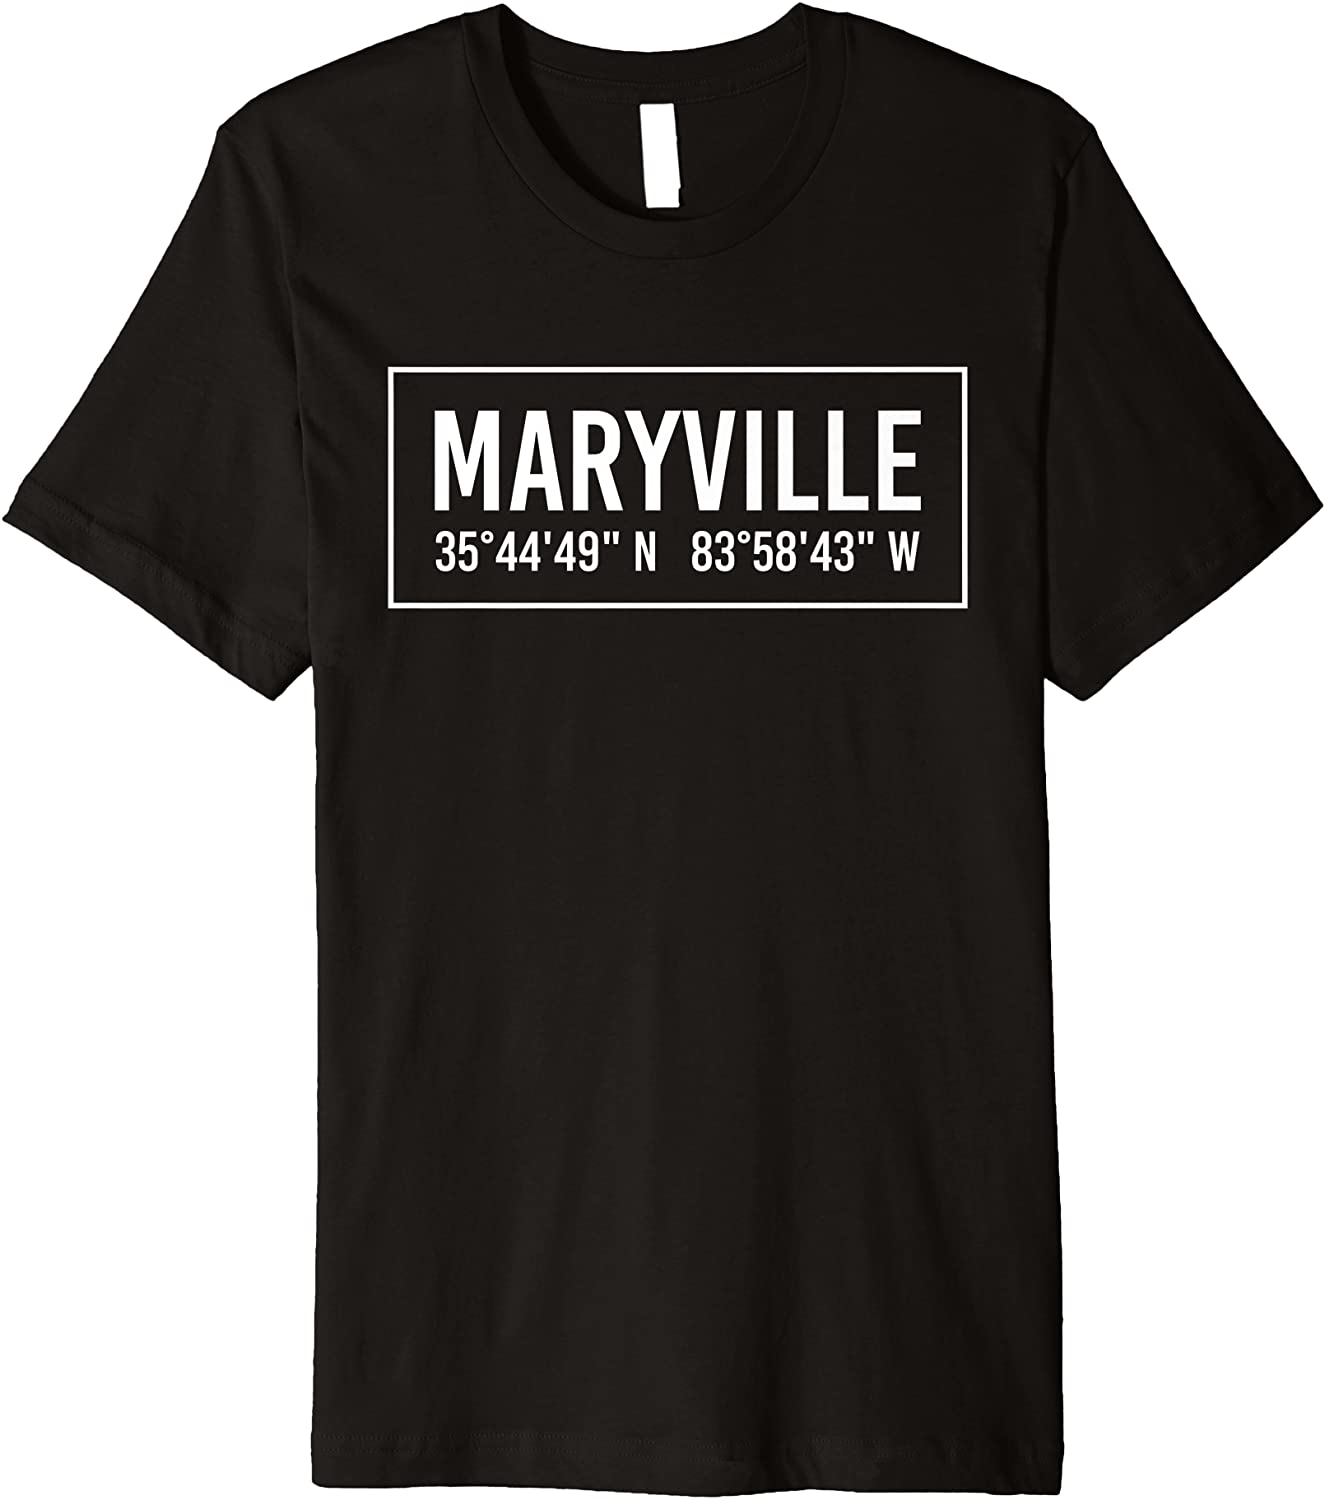 MARYVILLE TN TENNESSEE Funny City Coordinates Home Gift Premium T-Shirt